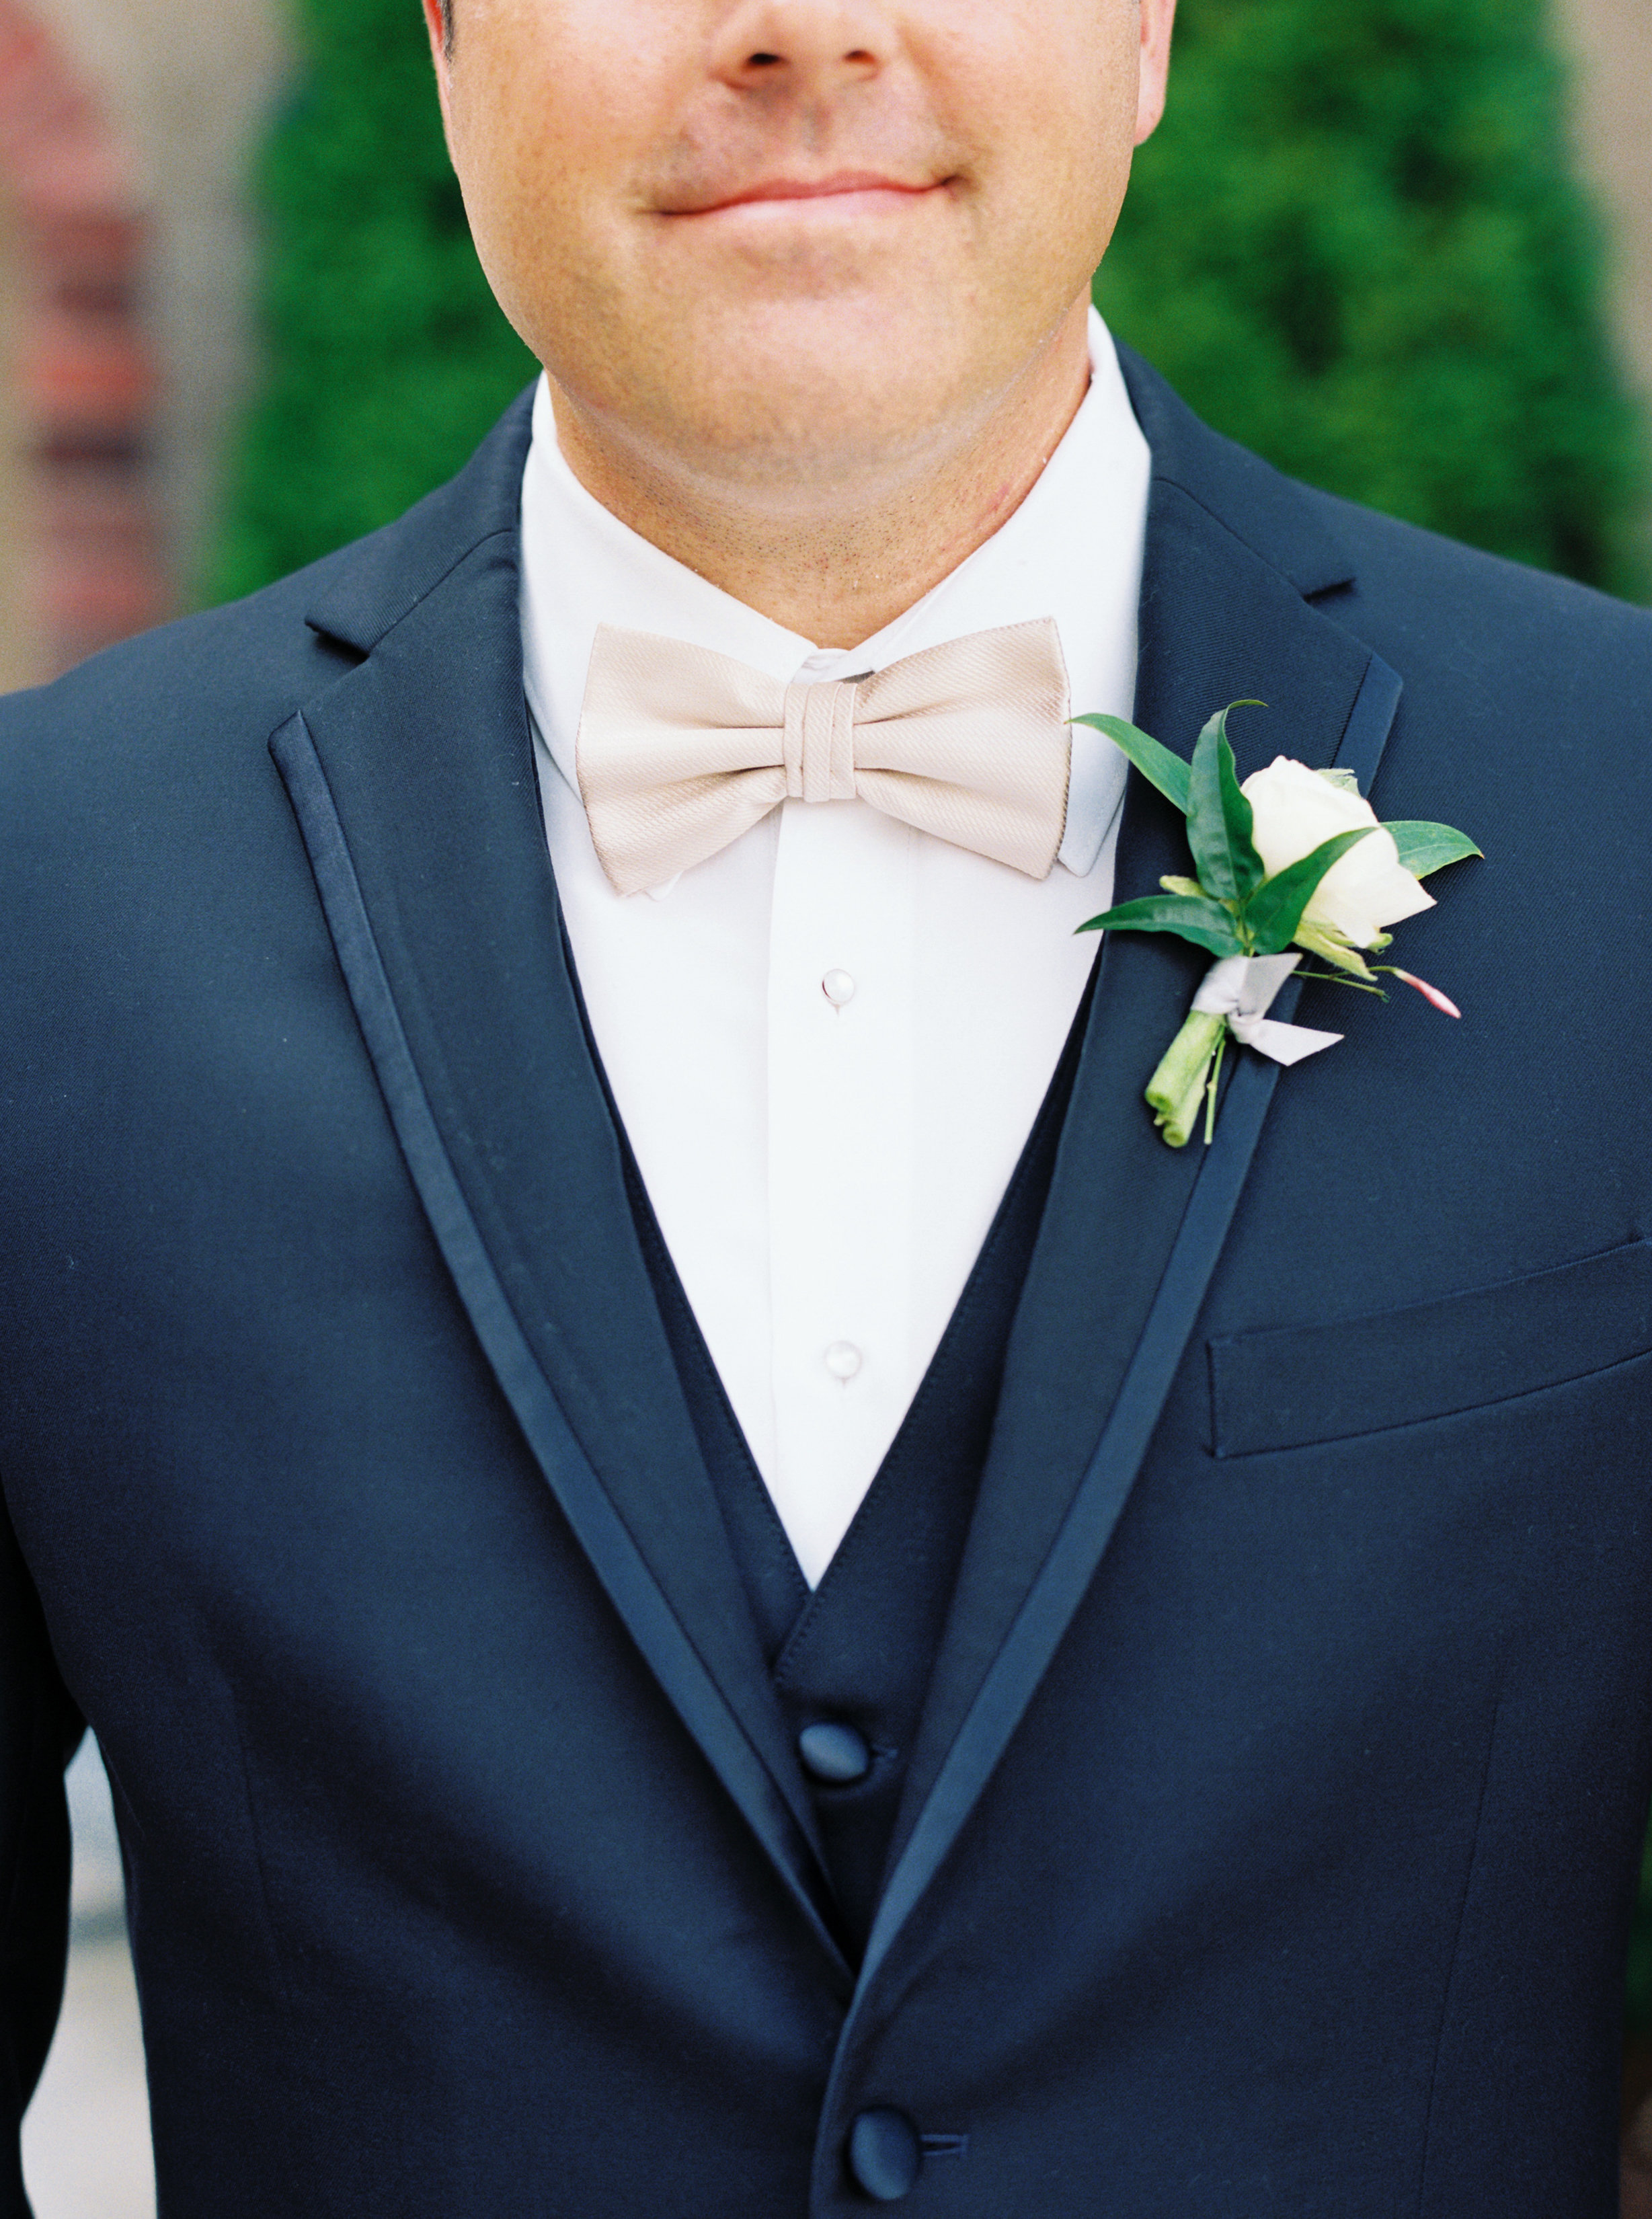 Champagne Manor - Charlotte NC Wedding - Perry Vaile Photography-195.jpg